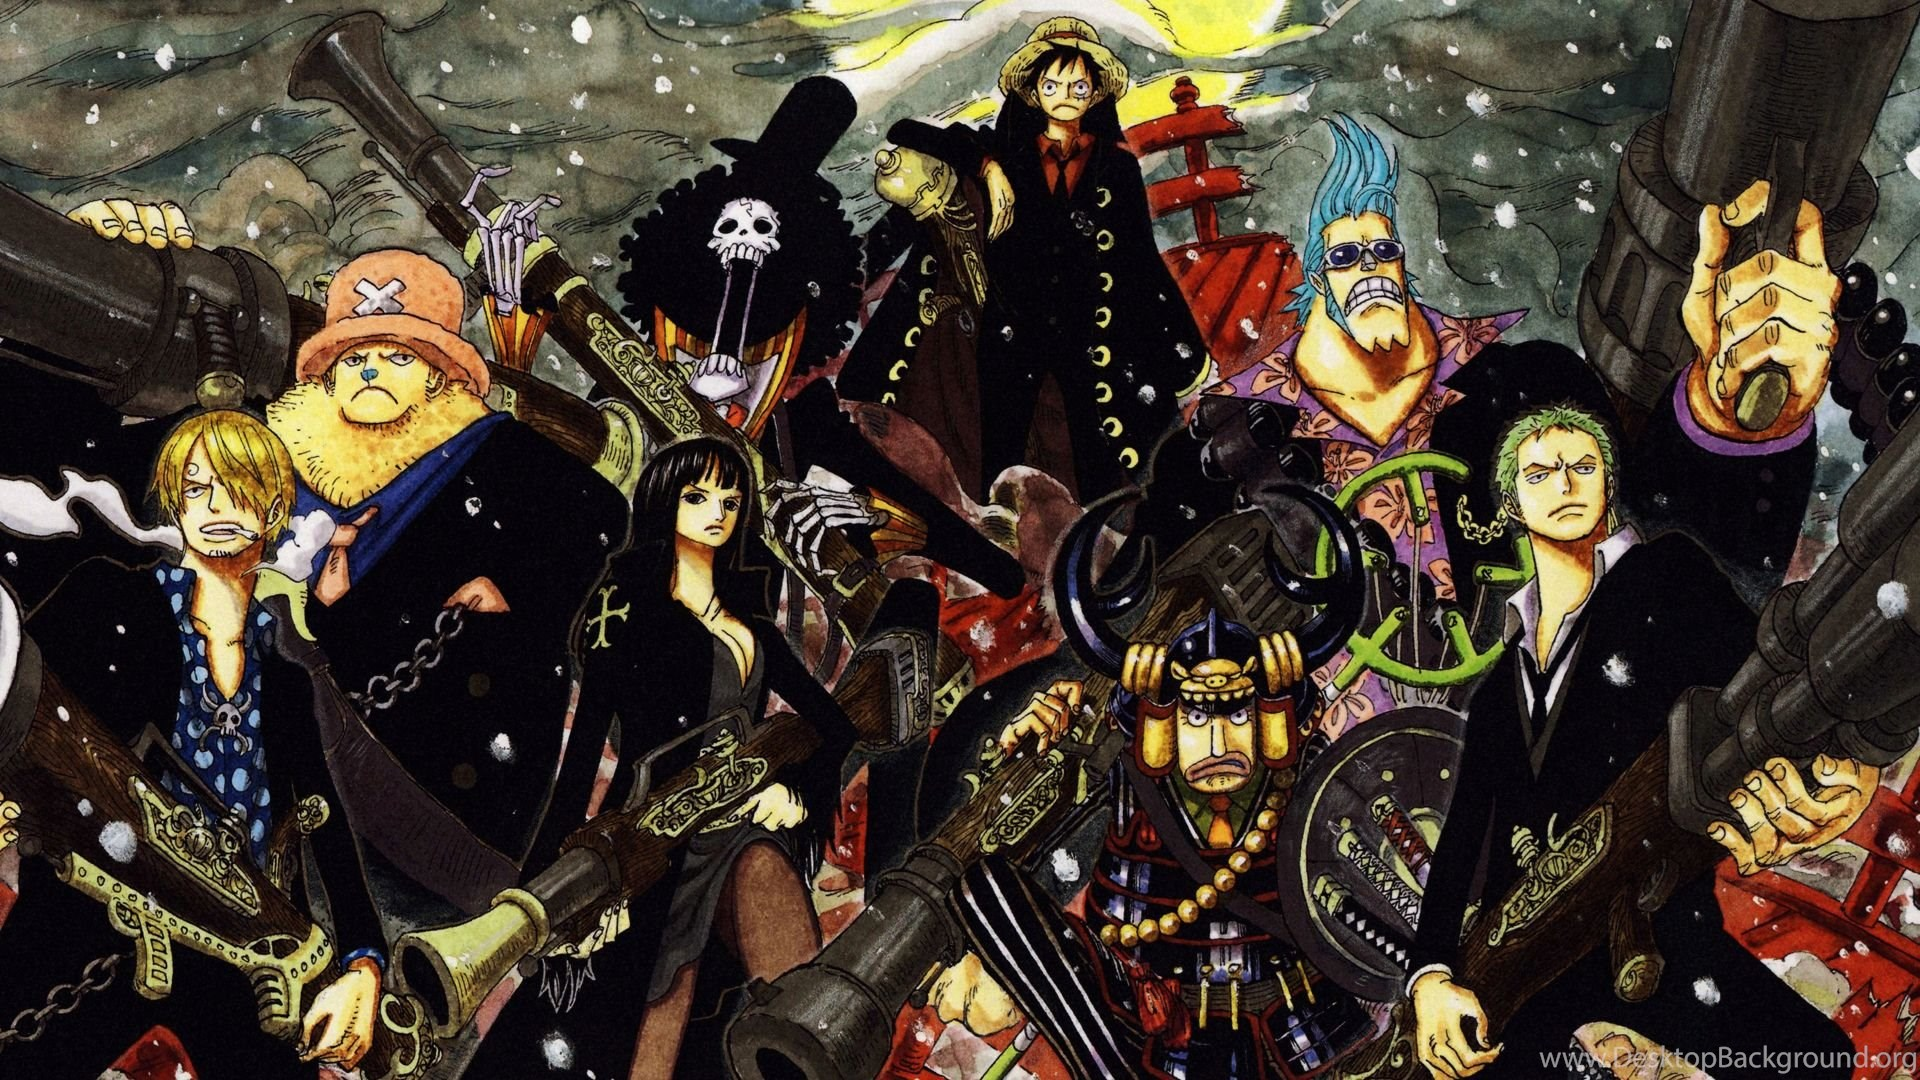 One Piece New World Wallpaper Backgrounds Hd Attachment 10503 Hd